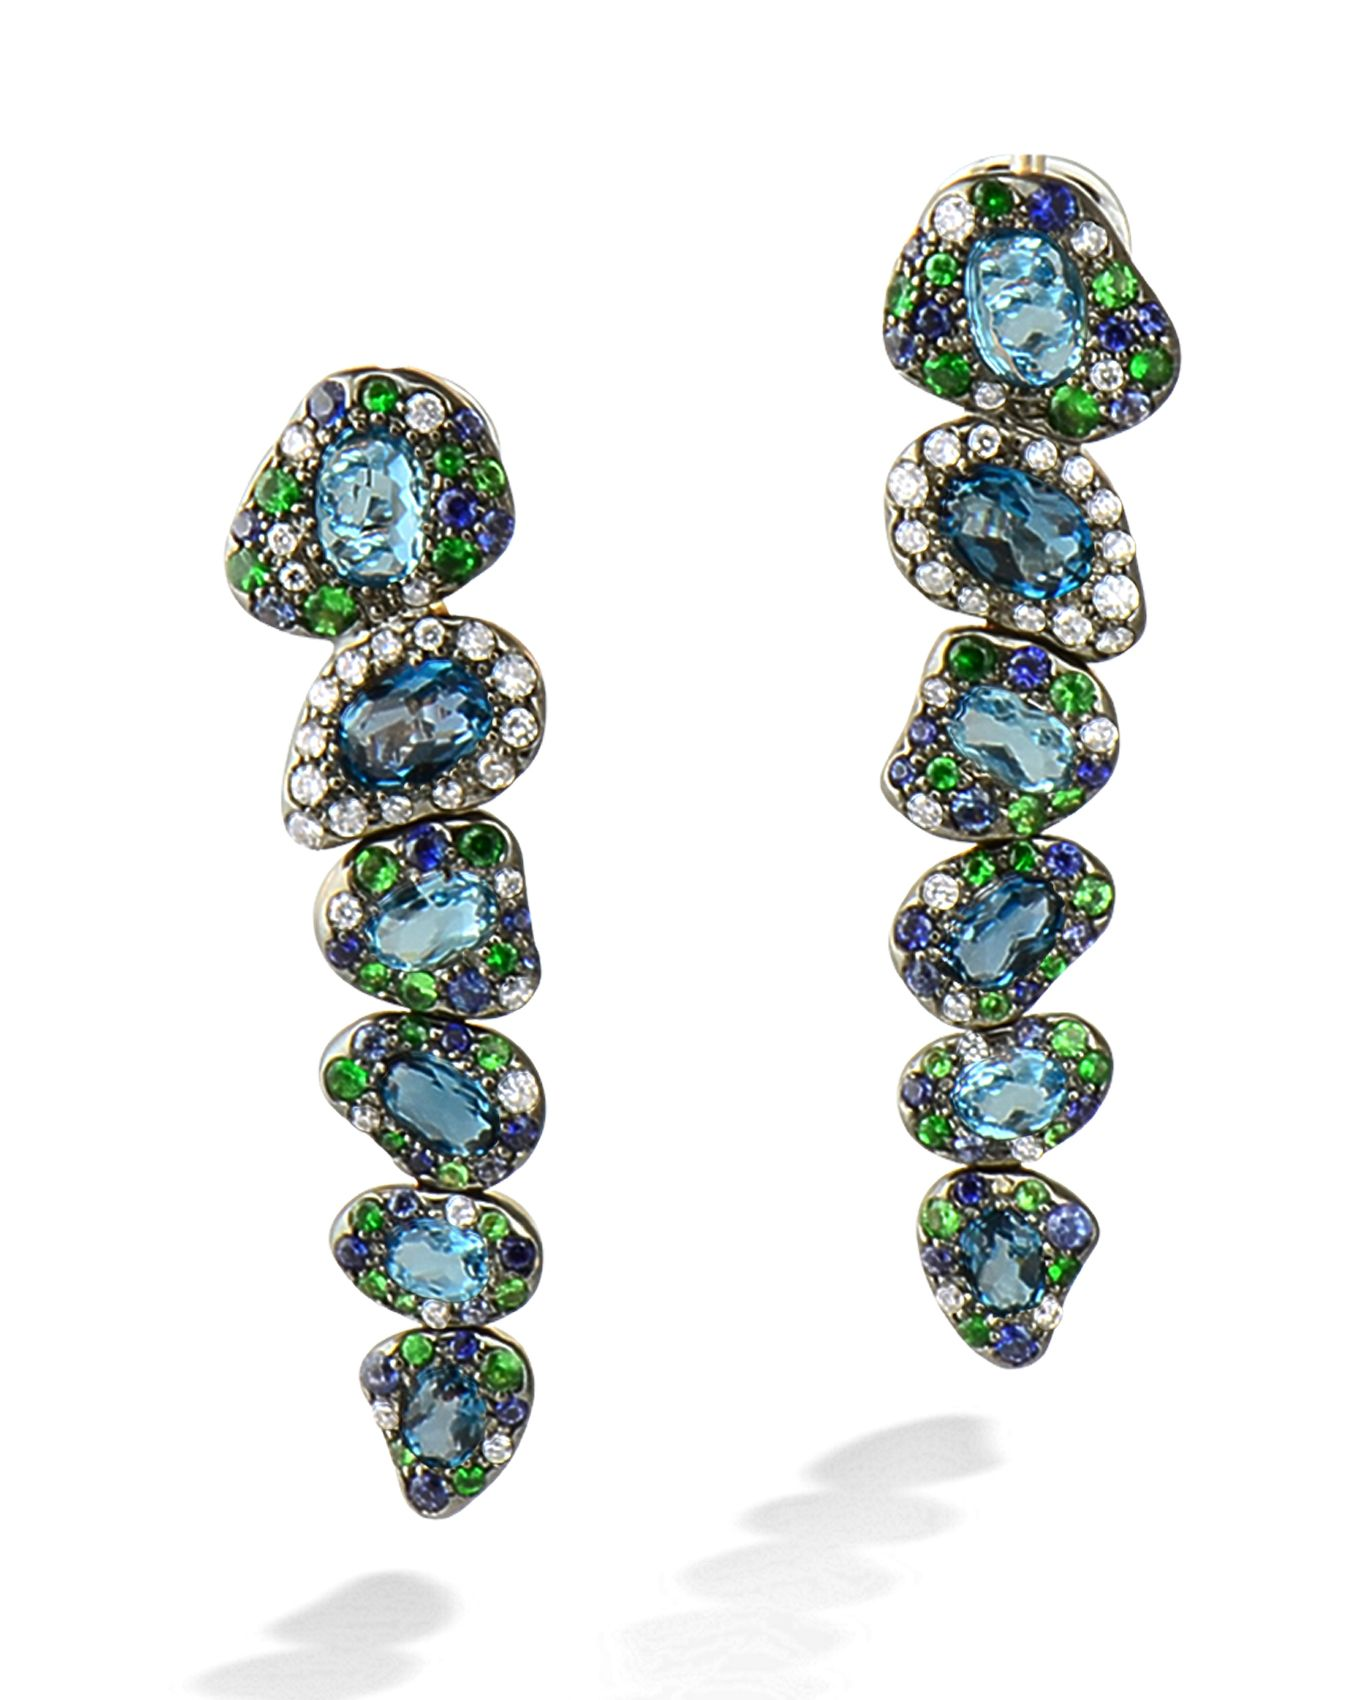 eff54f990 'Via Roma' drop earrings by Rodney Rayner. 18karat rose gold set with  diamonds, sapphires, tsavorite garnets and blue topaz.